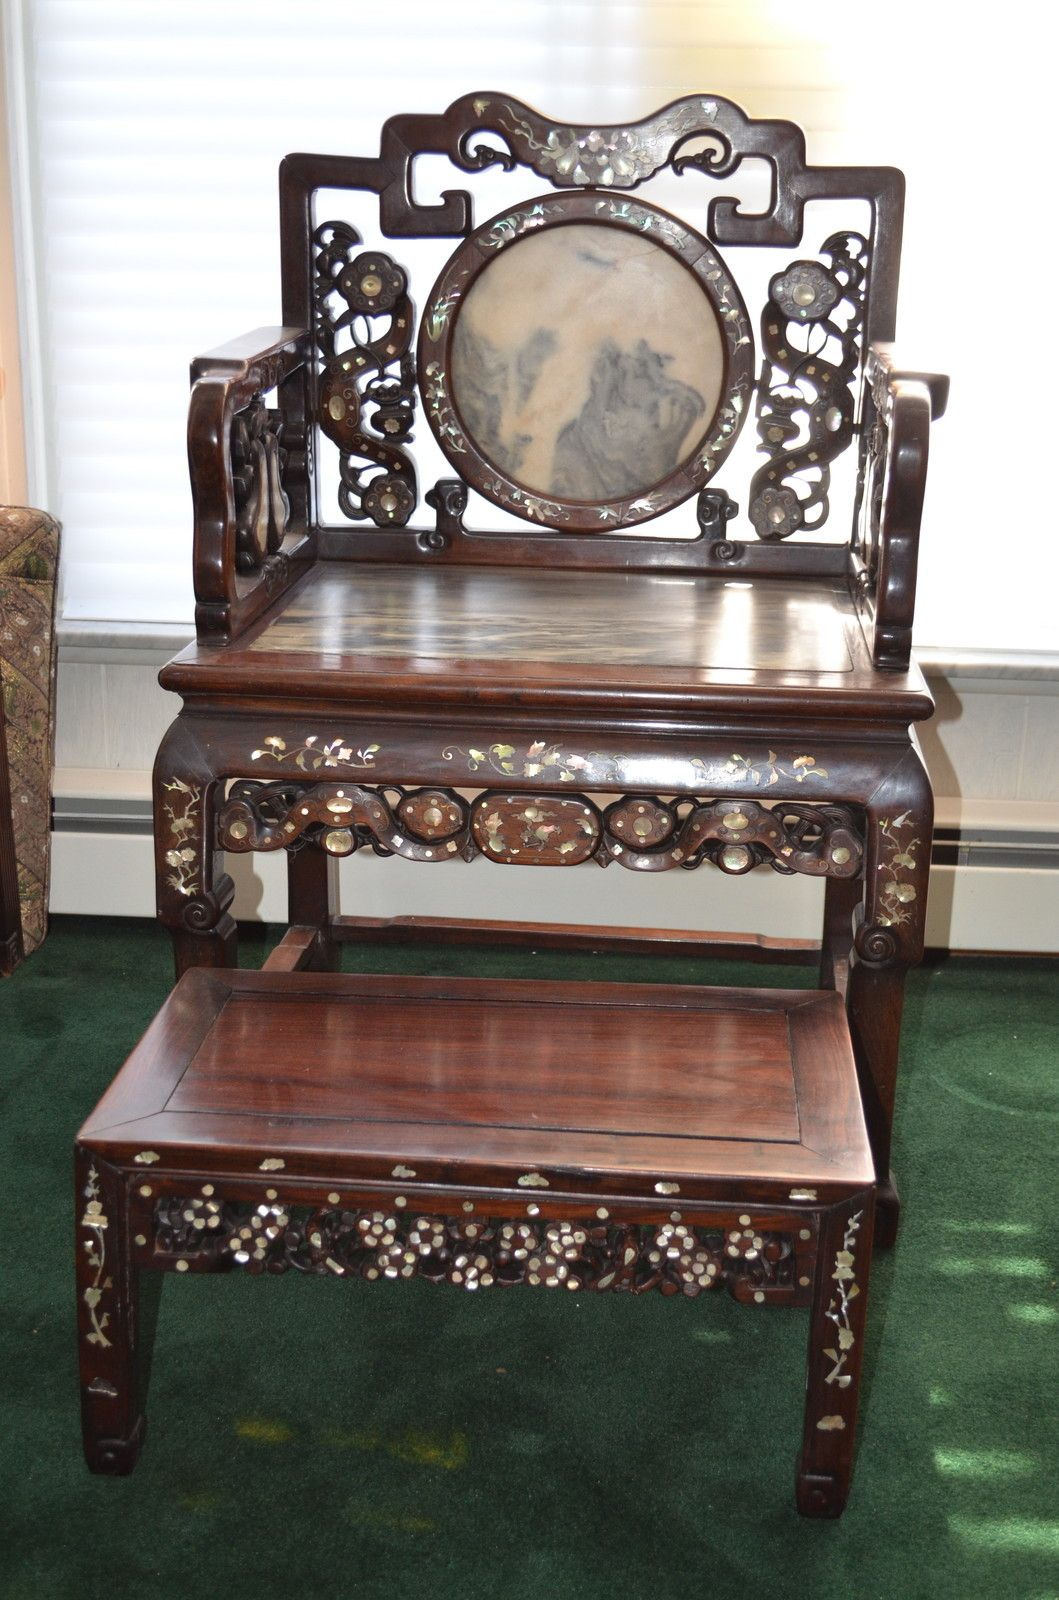 Antique Chinese Rosewood Chair And Foot Stool With Marble and Mother Of  Pearl Asian Furniture, - Antique Chinese Rosewood Chair And Foot Stool With Marble And Mother